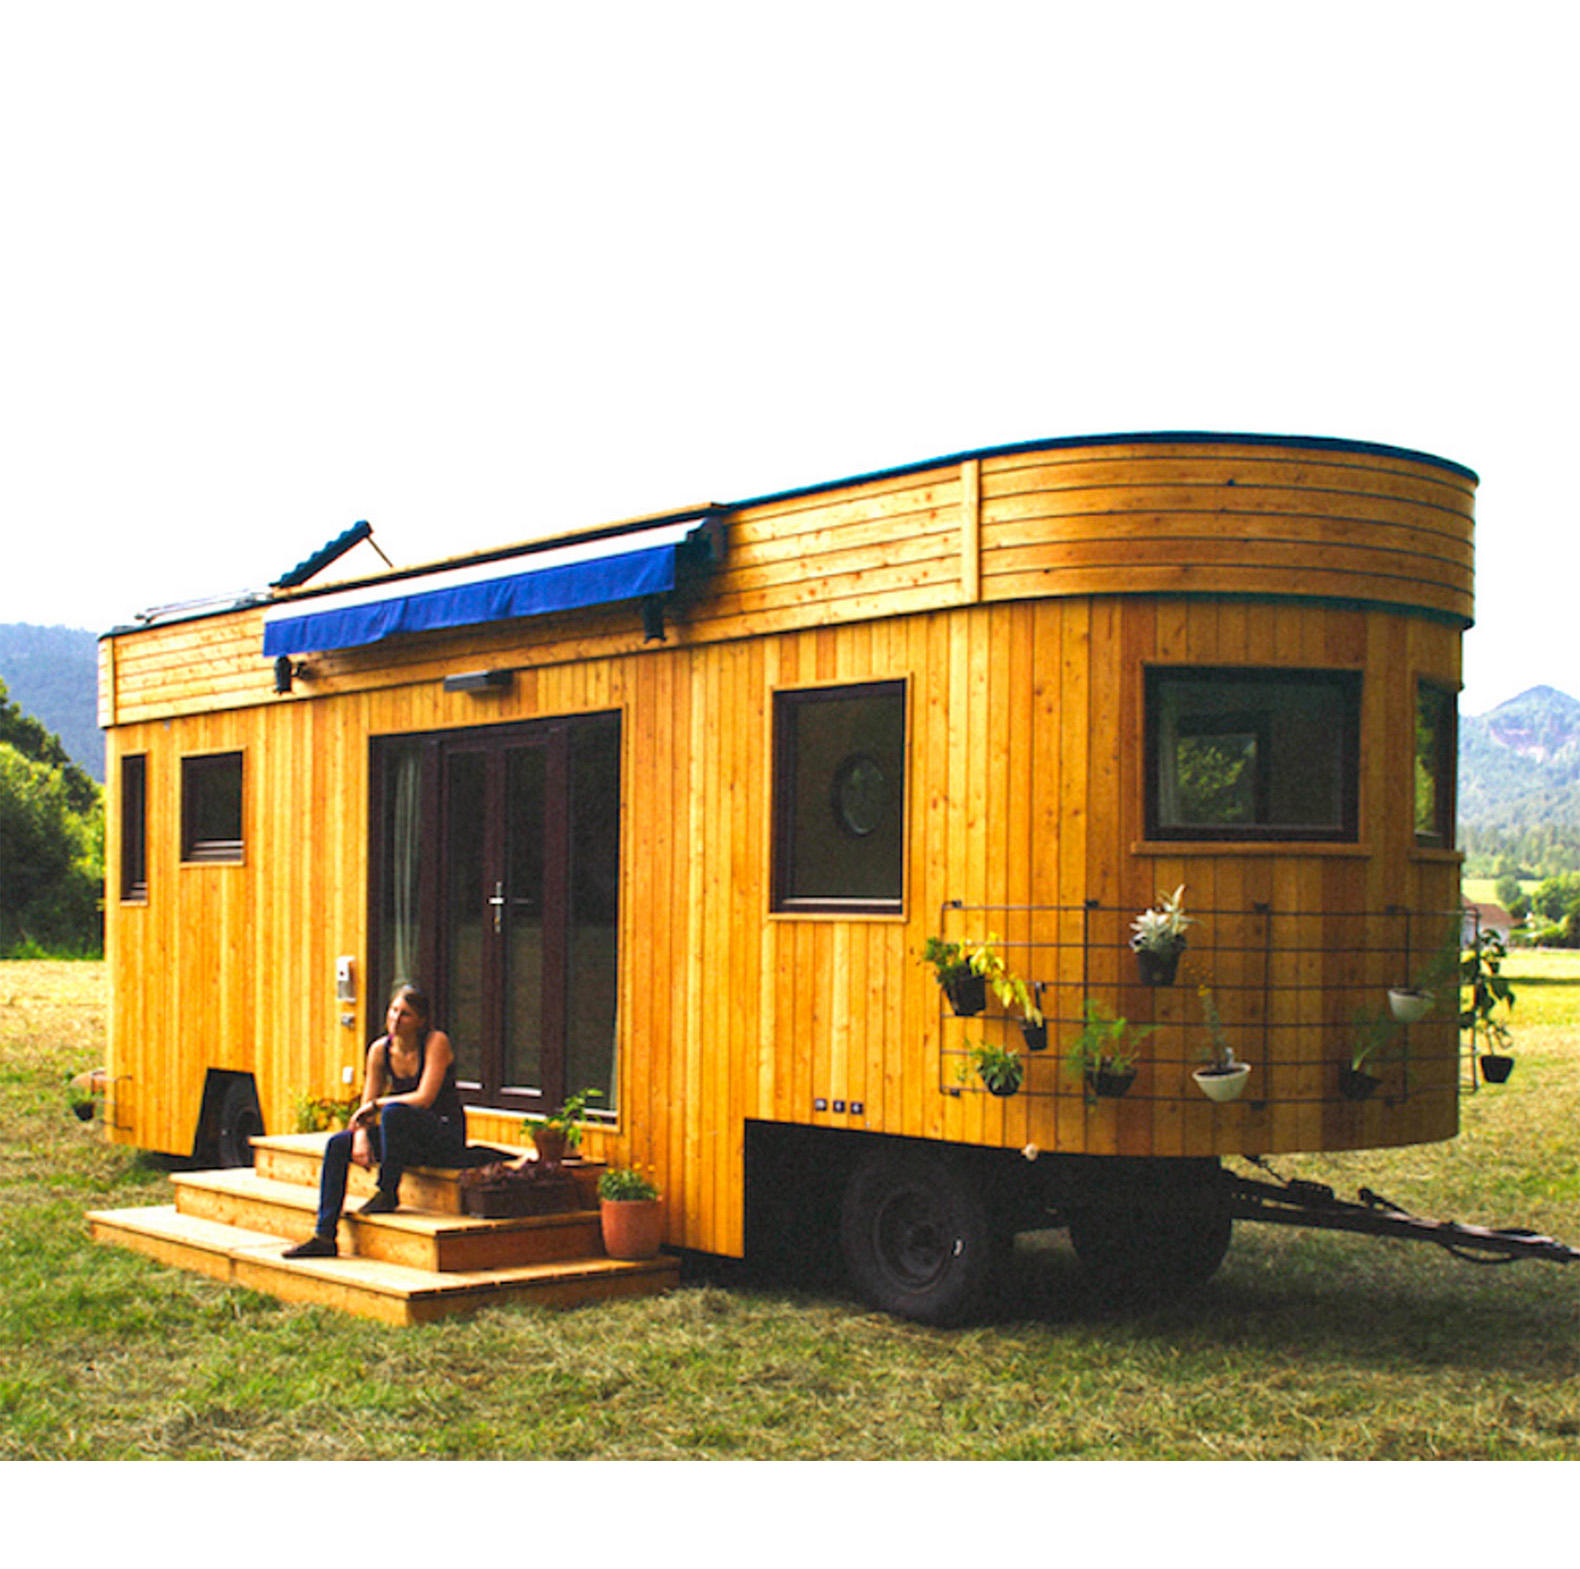 European luxury mini movable wood houses modular small mobile homes tiny houses prefab trailer homes for sale